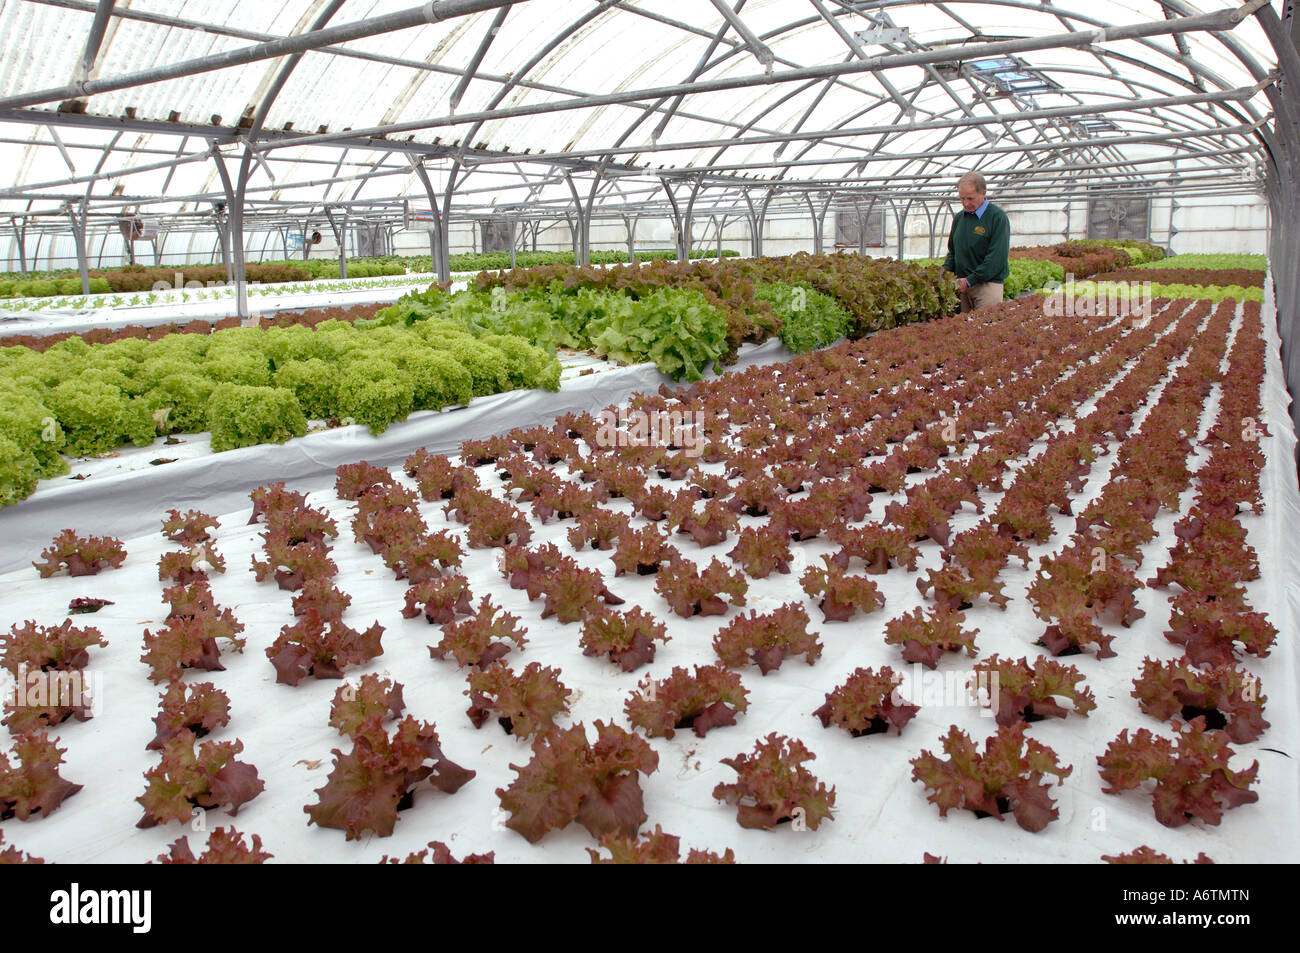 The greenhouse stanley -  Interior Of Stanley Growers And Nurseries Hydroponic Salad And Vegetable Growers In The Falkland Islands